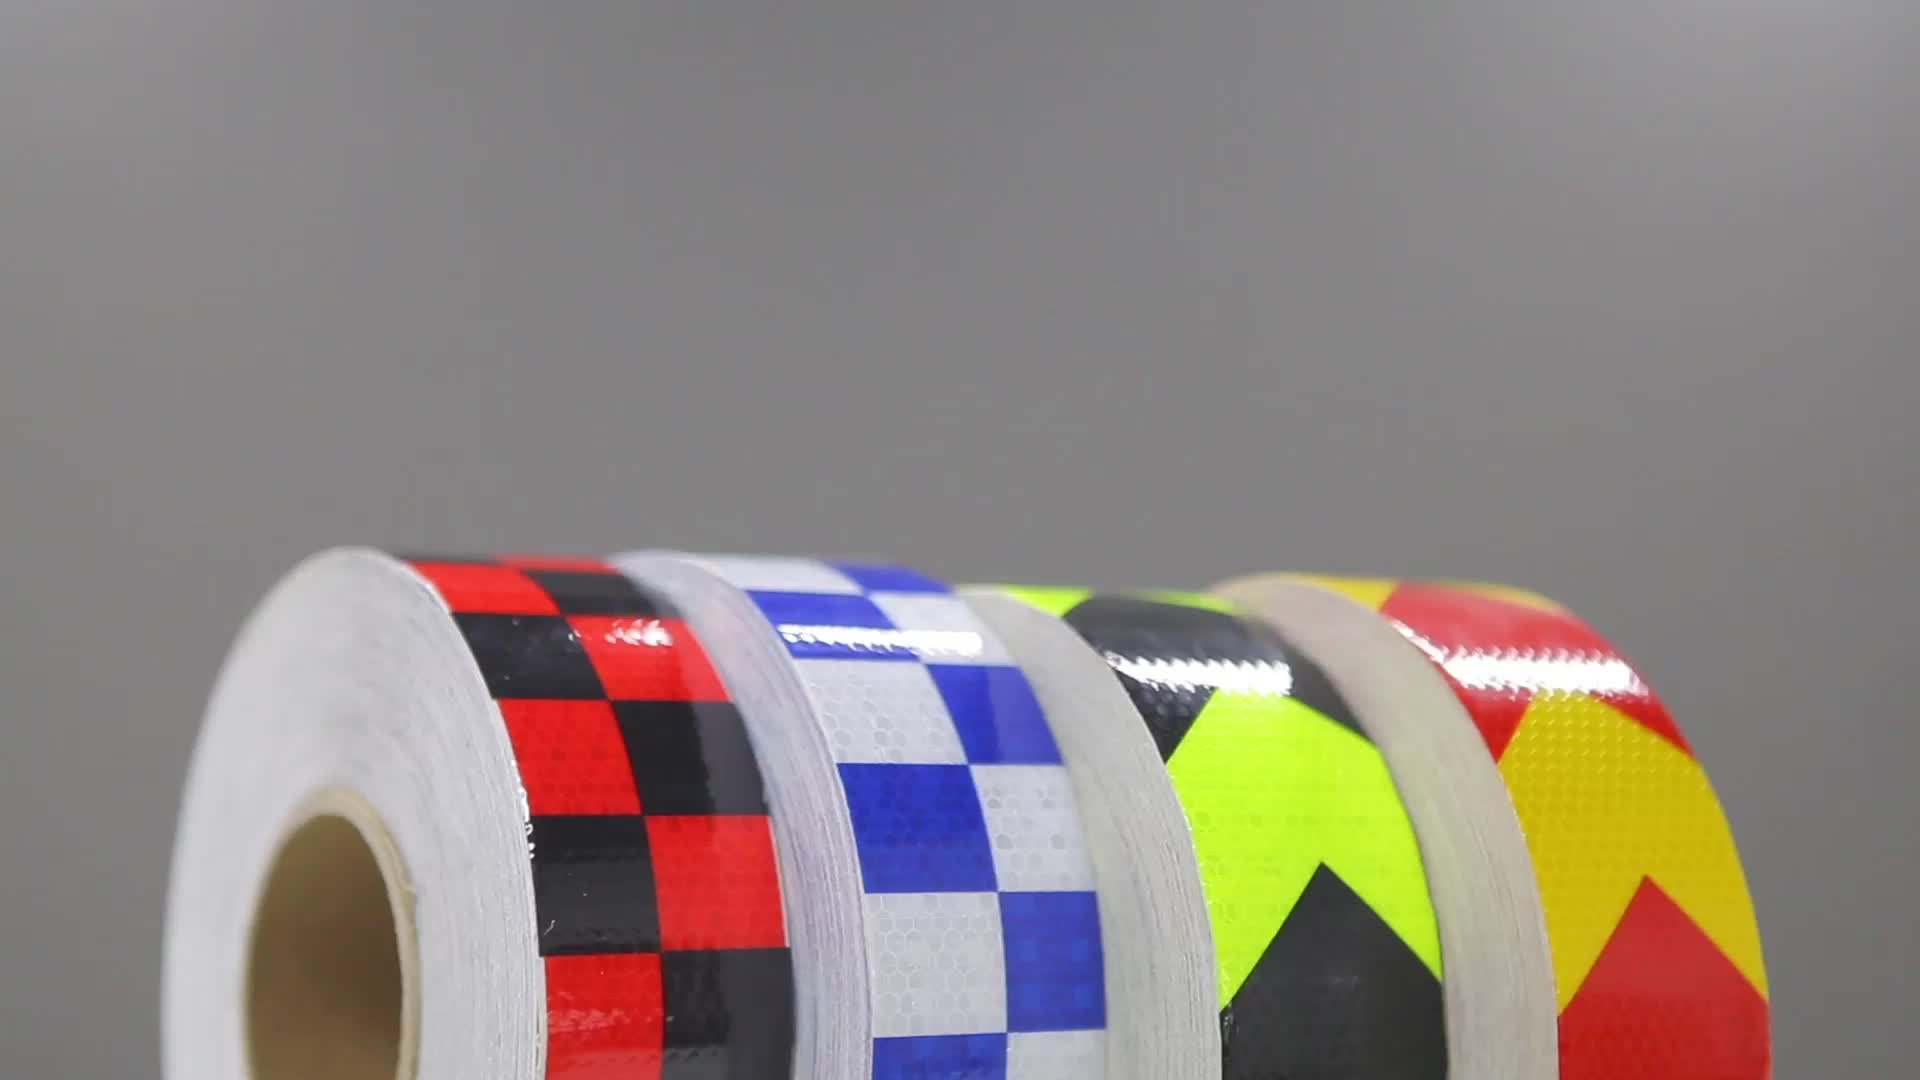 Pvc micro prism sparkle checkered reflective tape vinyl roll sheeting material for warning safety